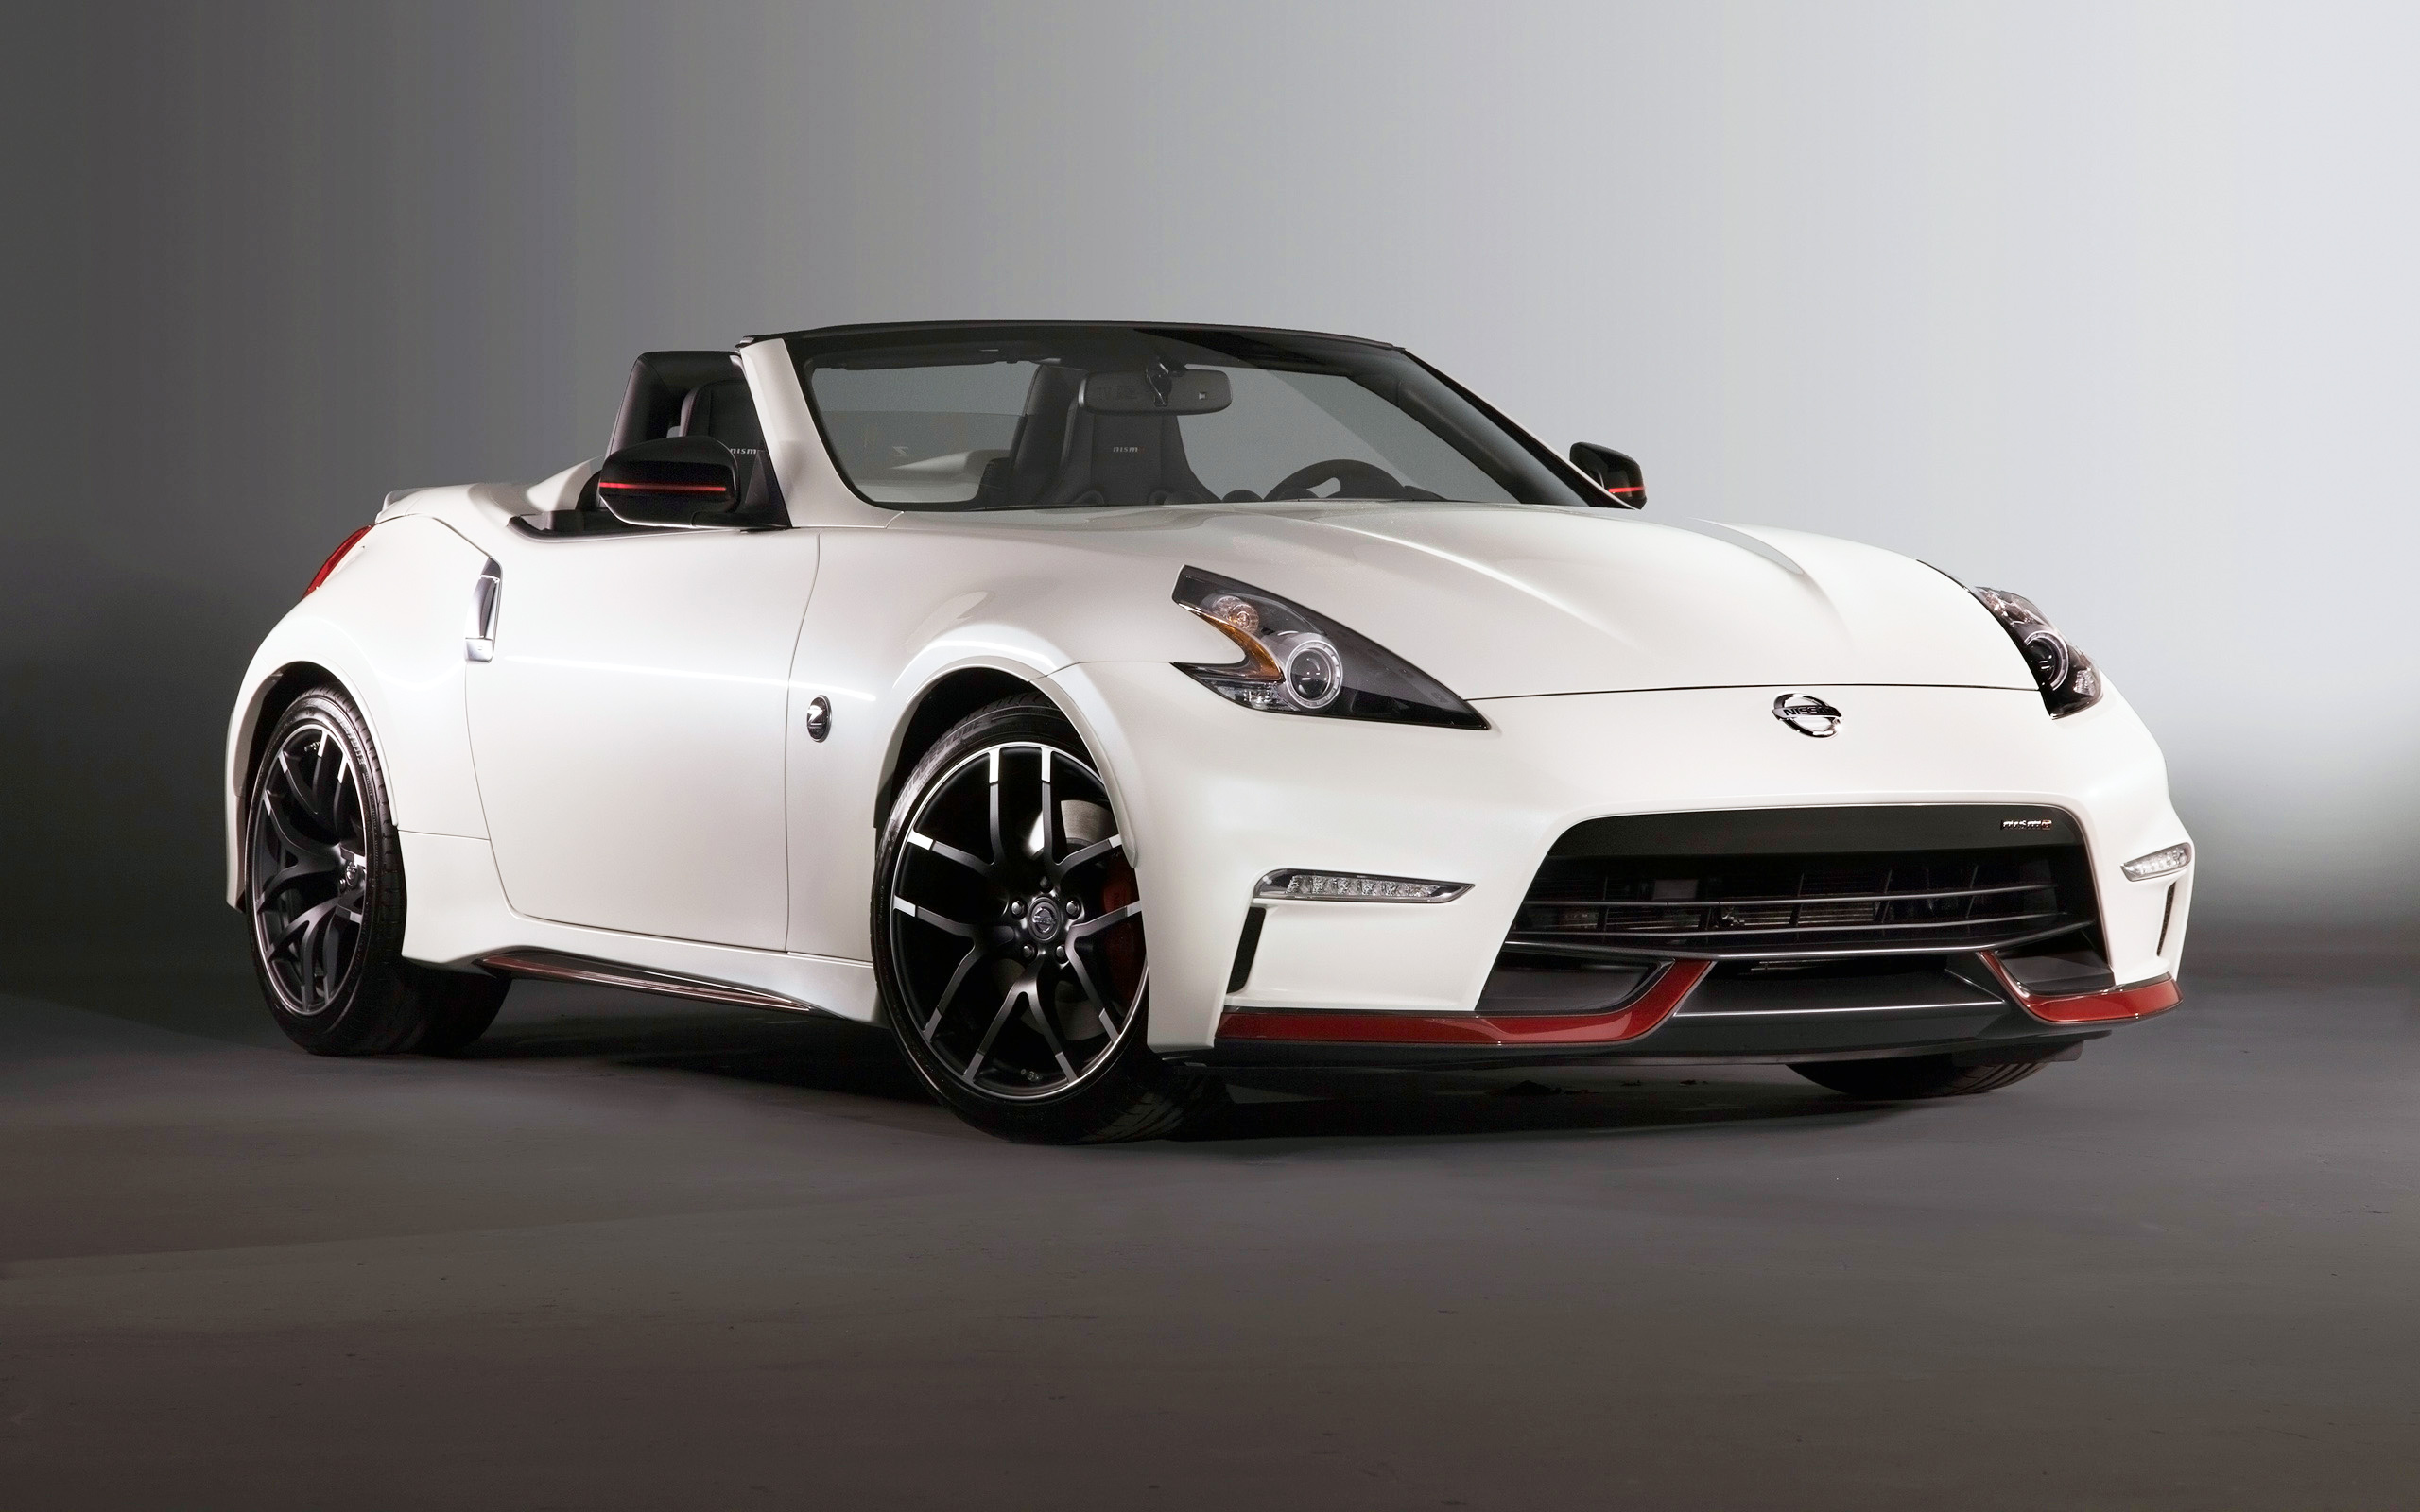 2015 nissan 370z nismo roadster concept wallpaper hd car wallpapers. Black Bedroom Furniture Sets. Home Design Ideas